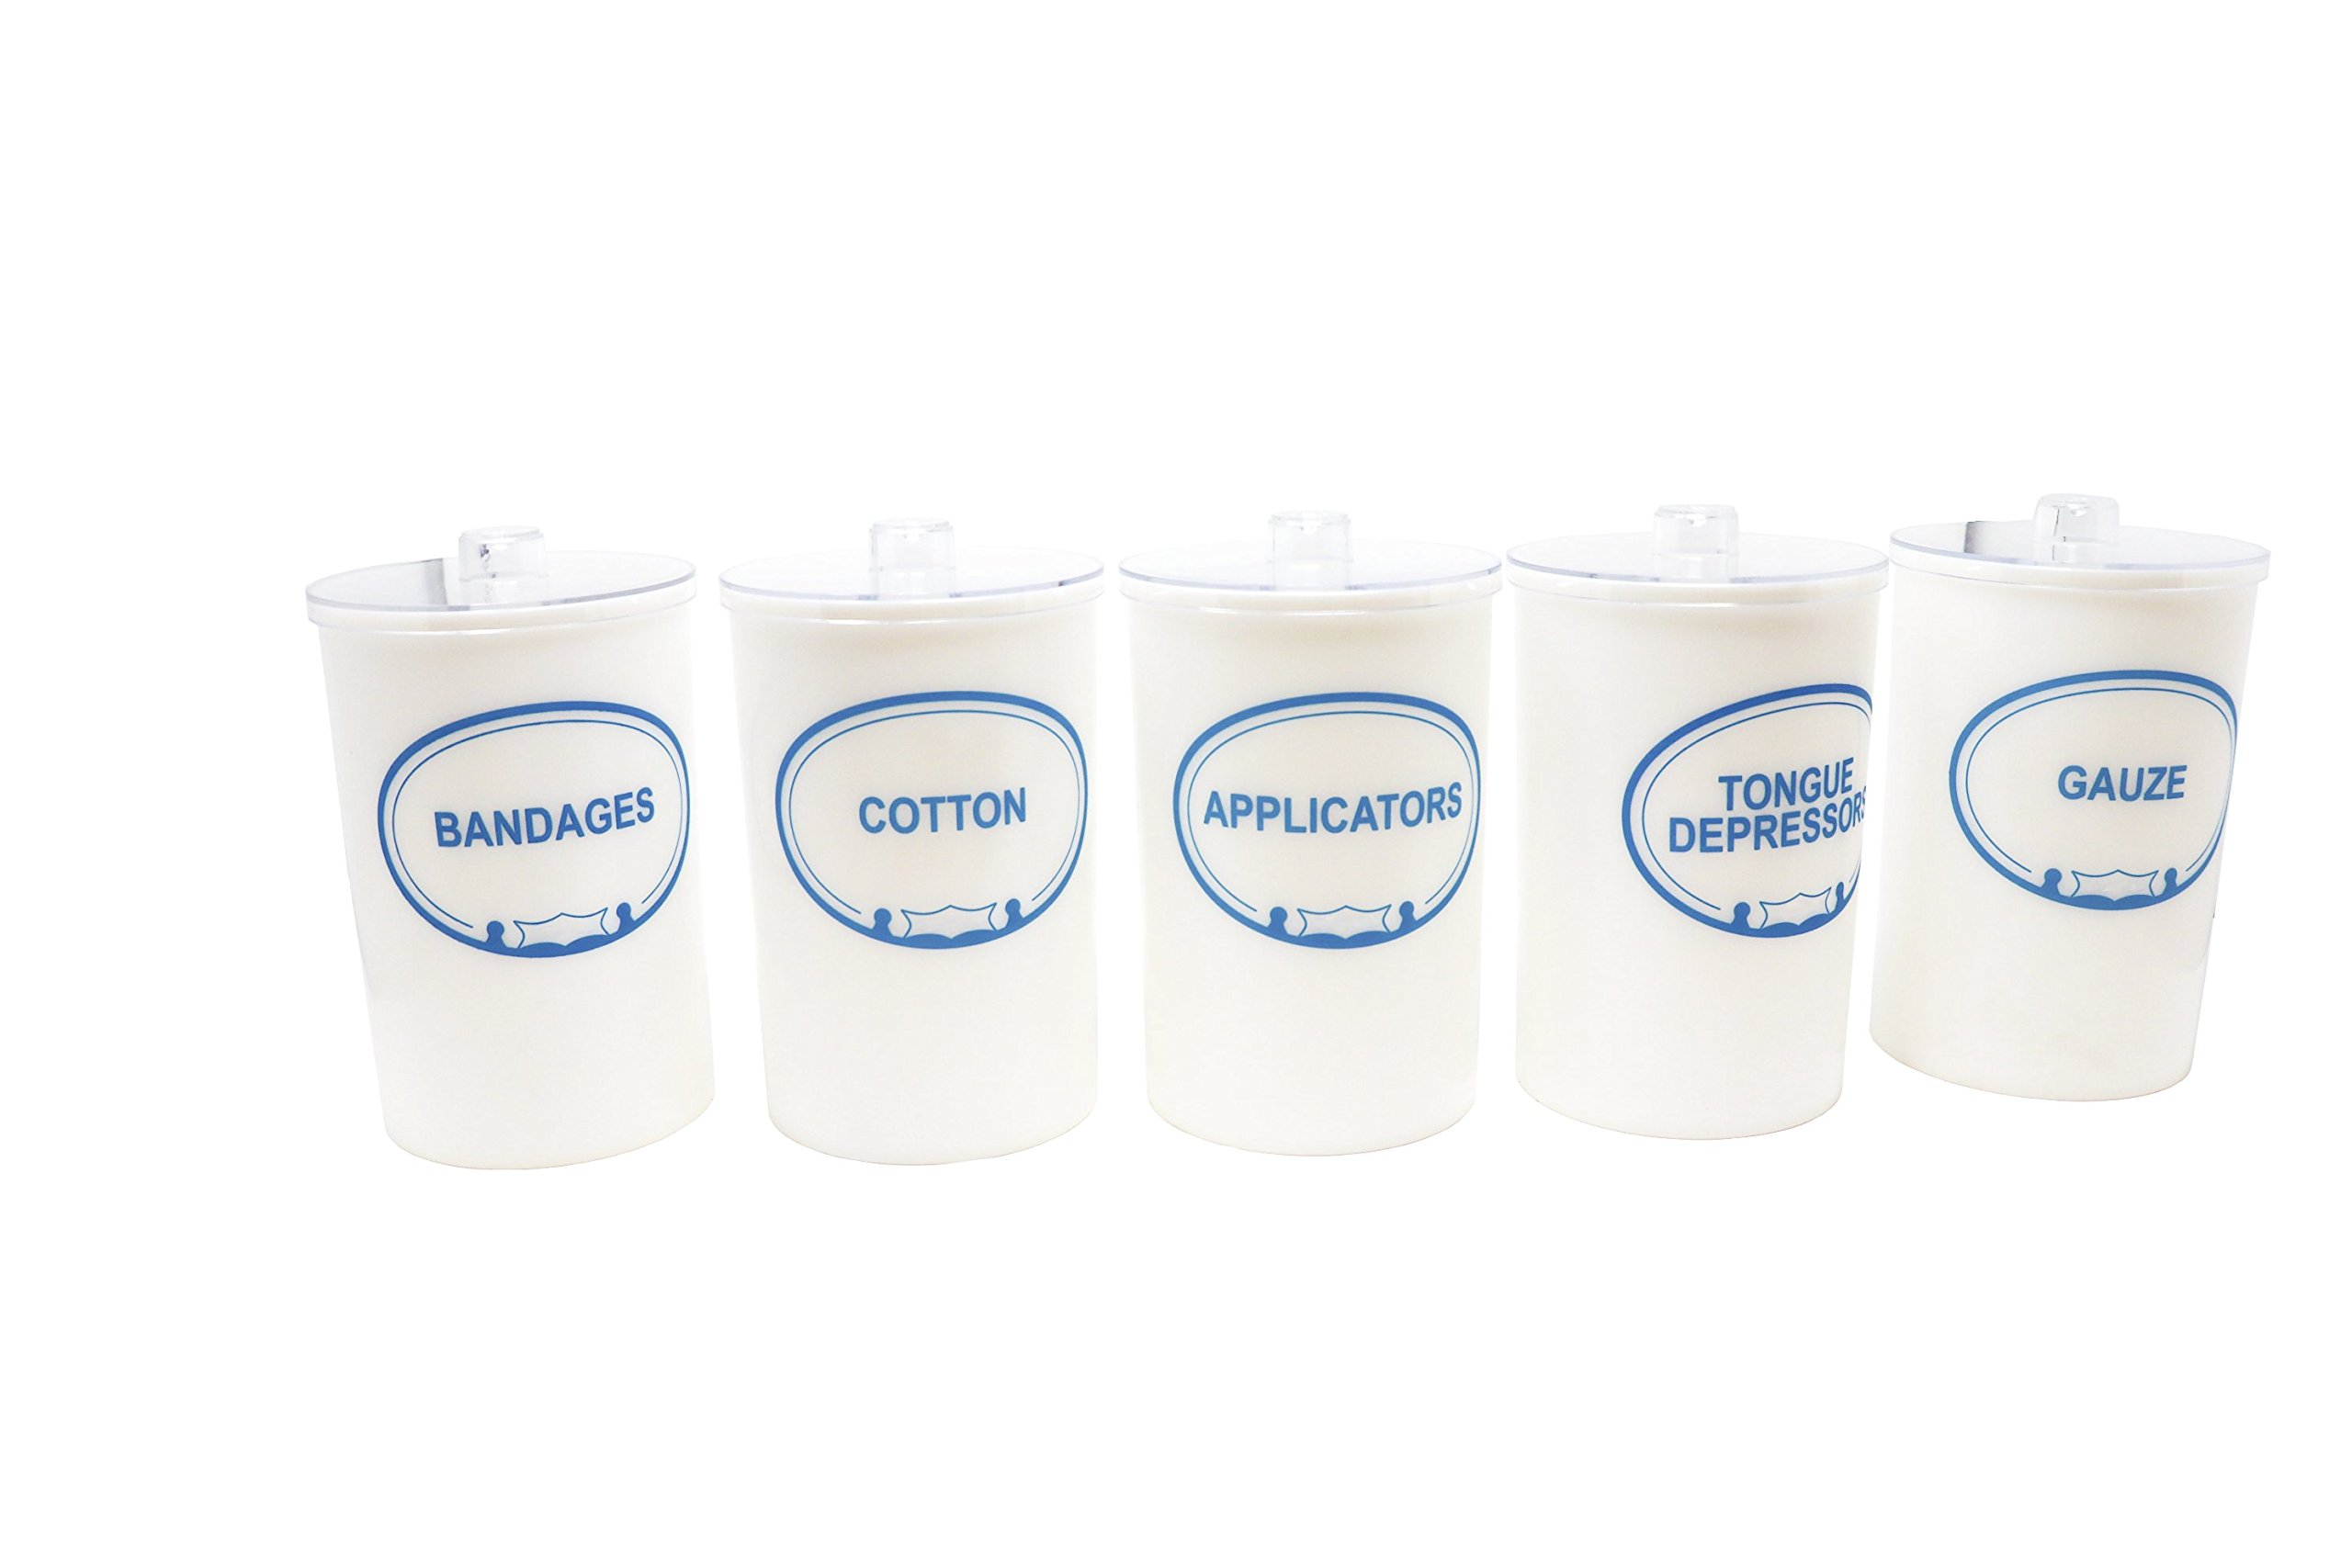 Pivit Labeled Apothecary Sundry Jars With Lid | 7''H X 4.25''D | Set of 5 | Bandages, Applicators, Gauze, Cotton, and Tongue Depressors Imprinted | Removable Top Cover | Unbreakable Opaque Polystyrene